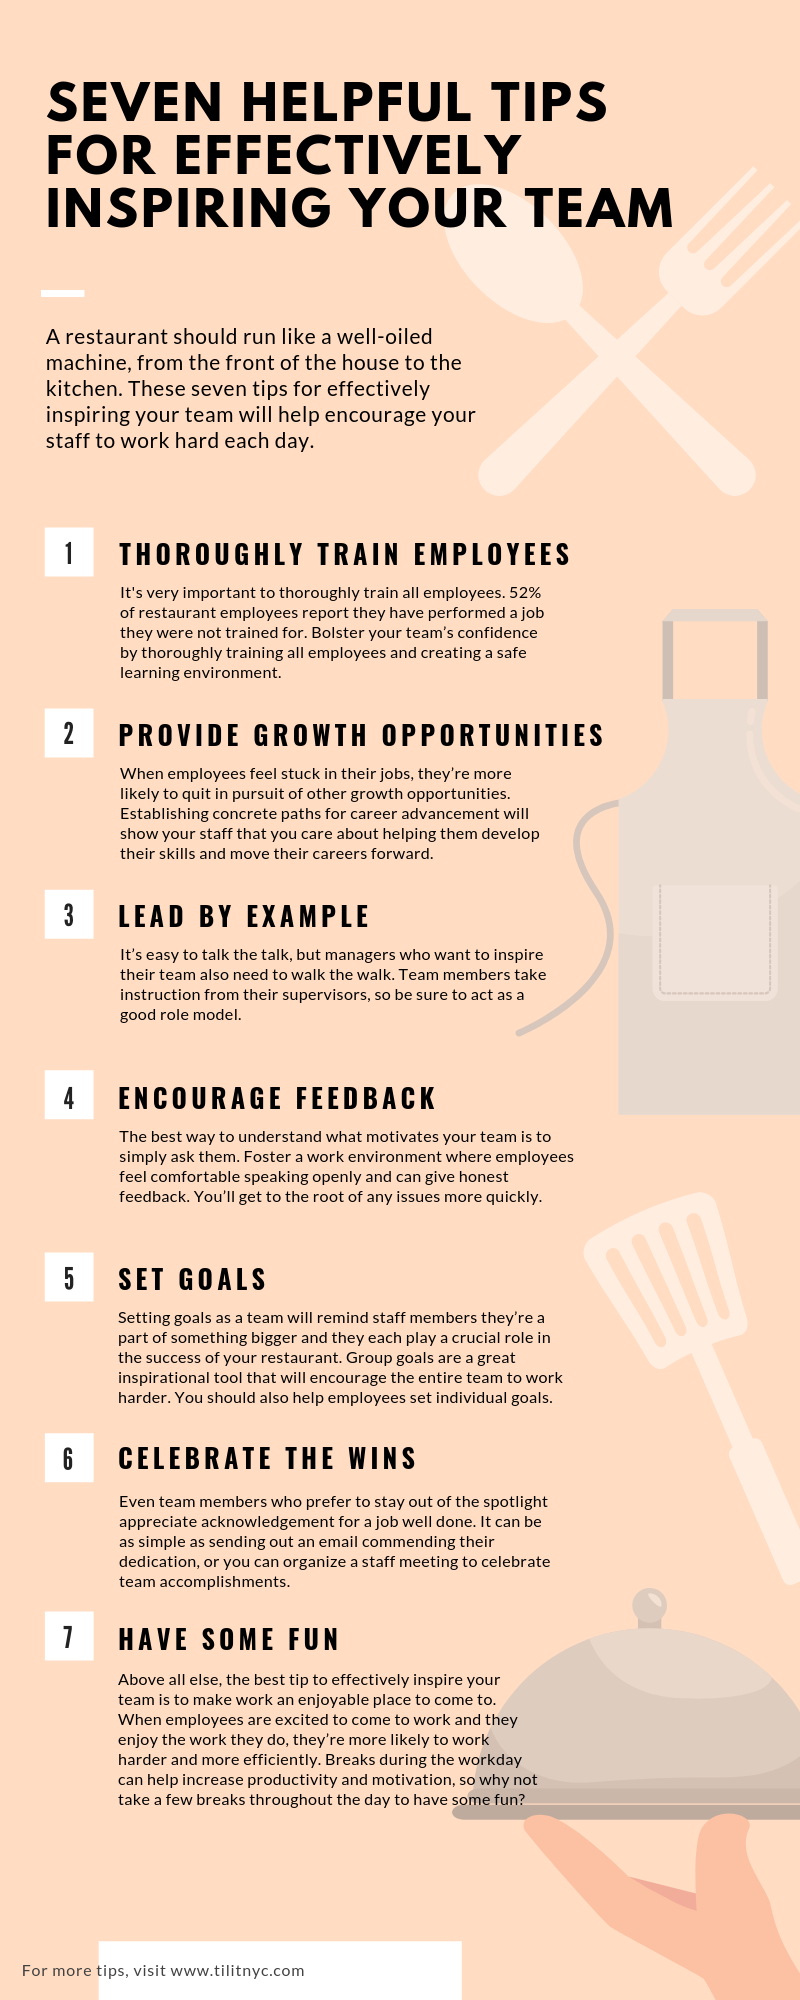 Seven Helpful Tips for Effectively Inspiring Your Team infographic